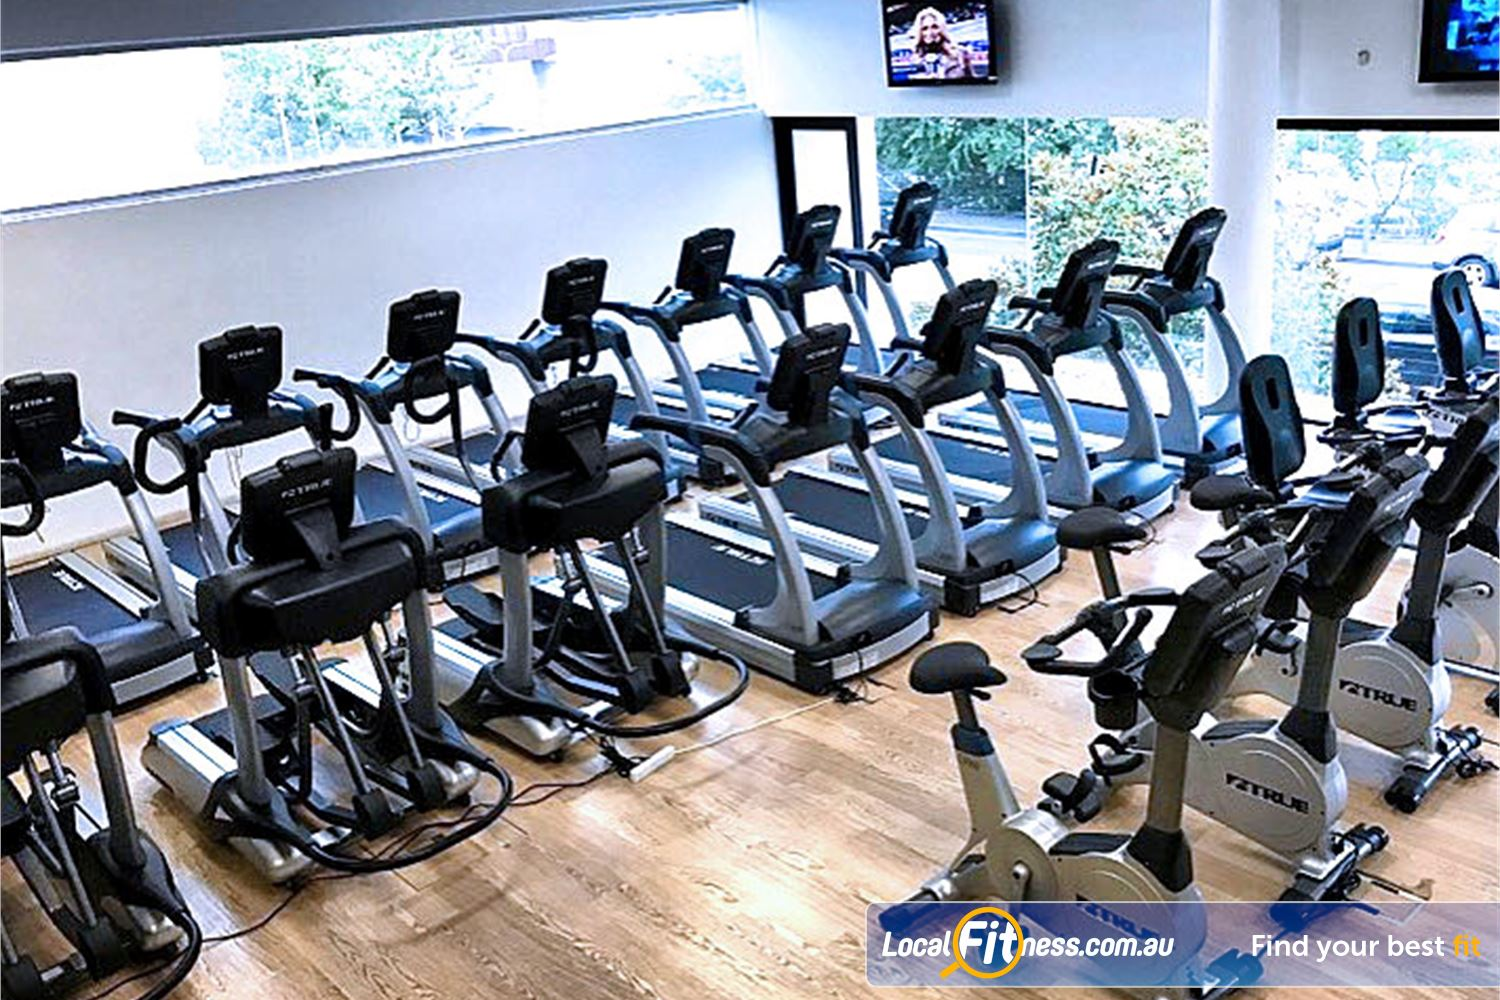 Cook and Phillip Park Aquatic and Fitness Centre Near Strawberry Hills State of the art cardio machines inc treadmills, cross trailers and more.